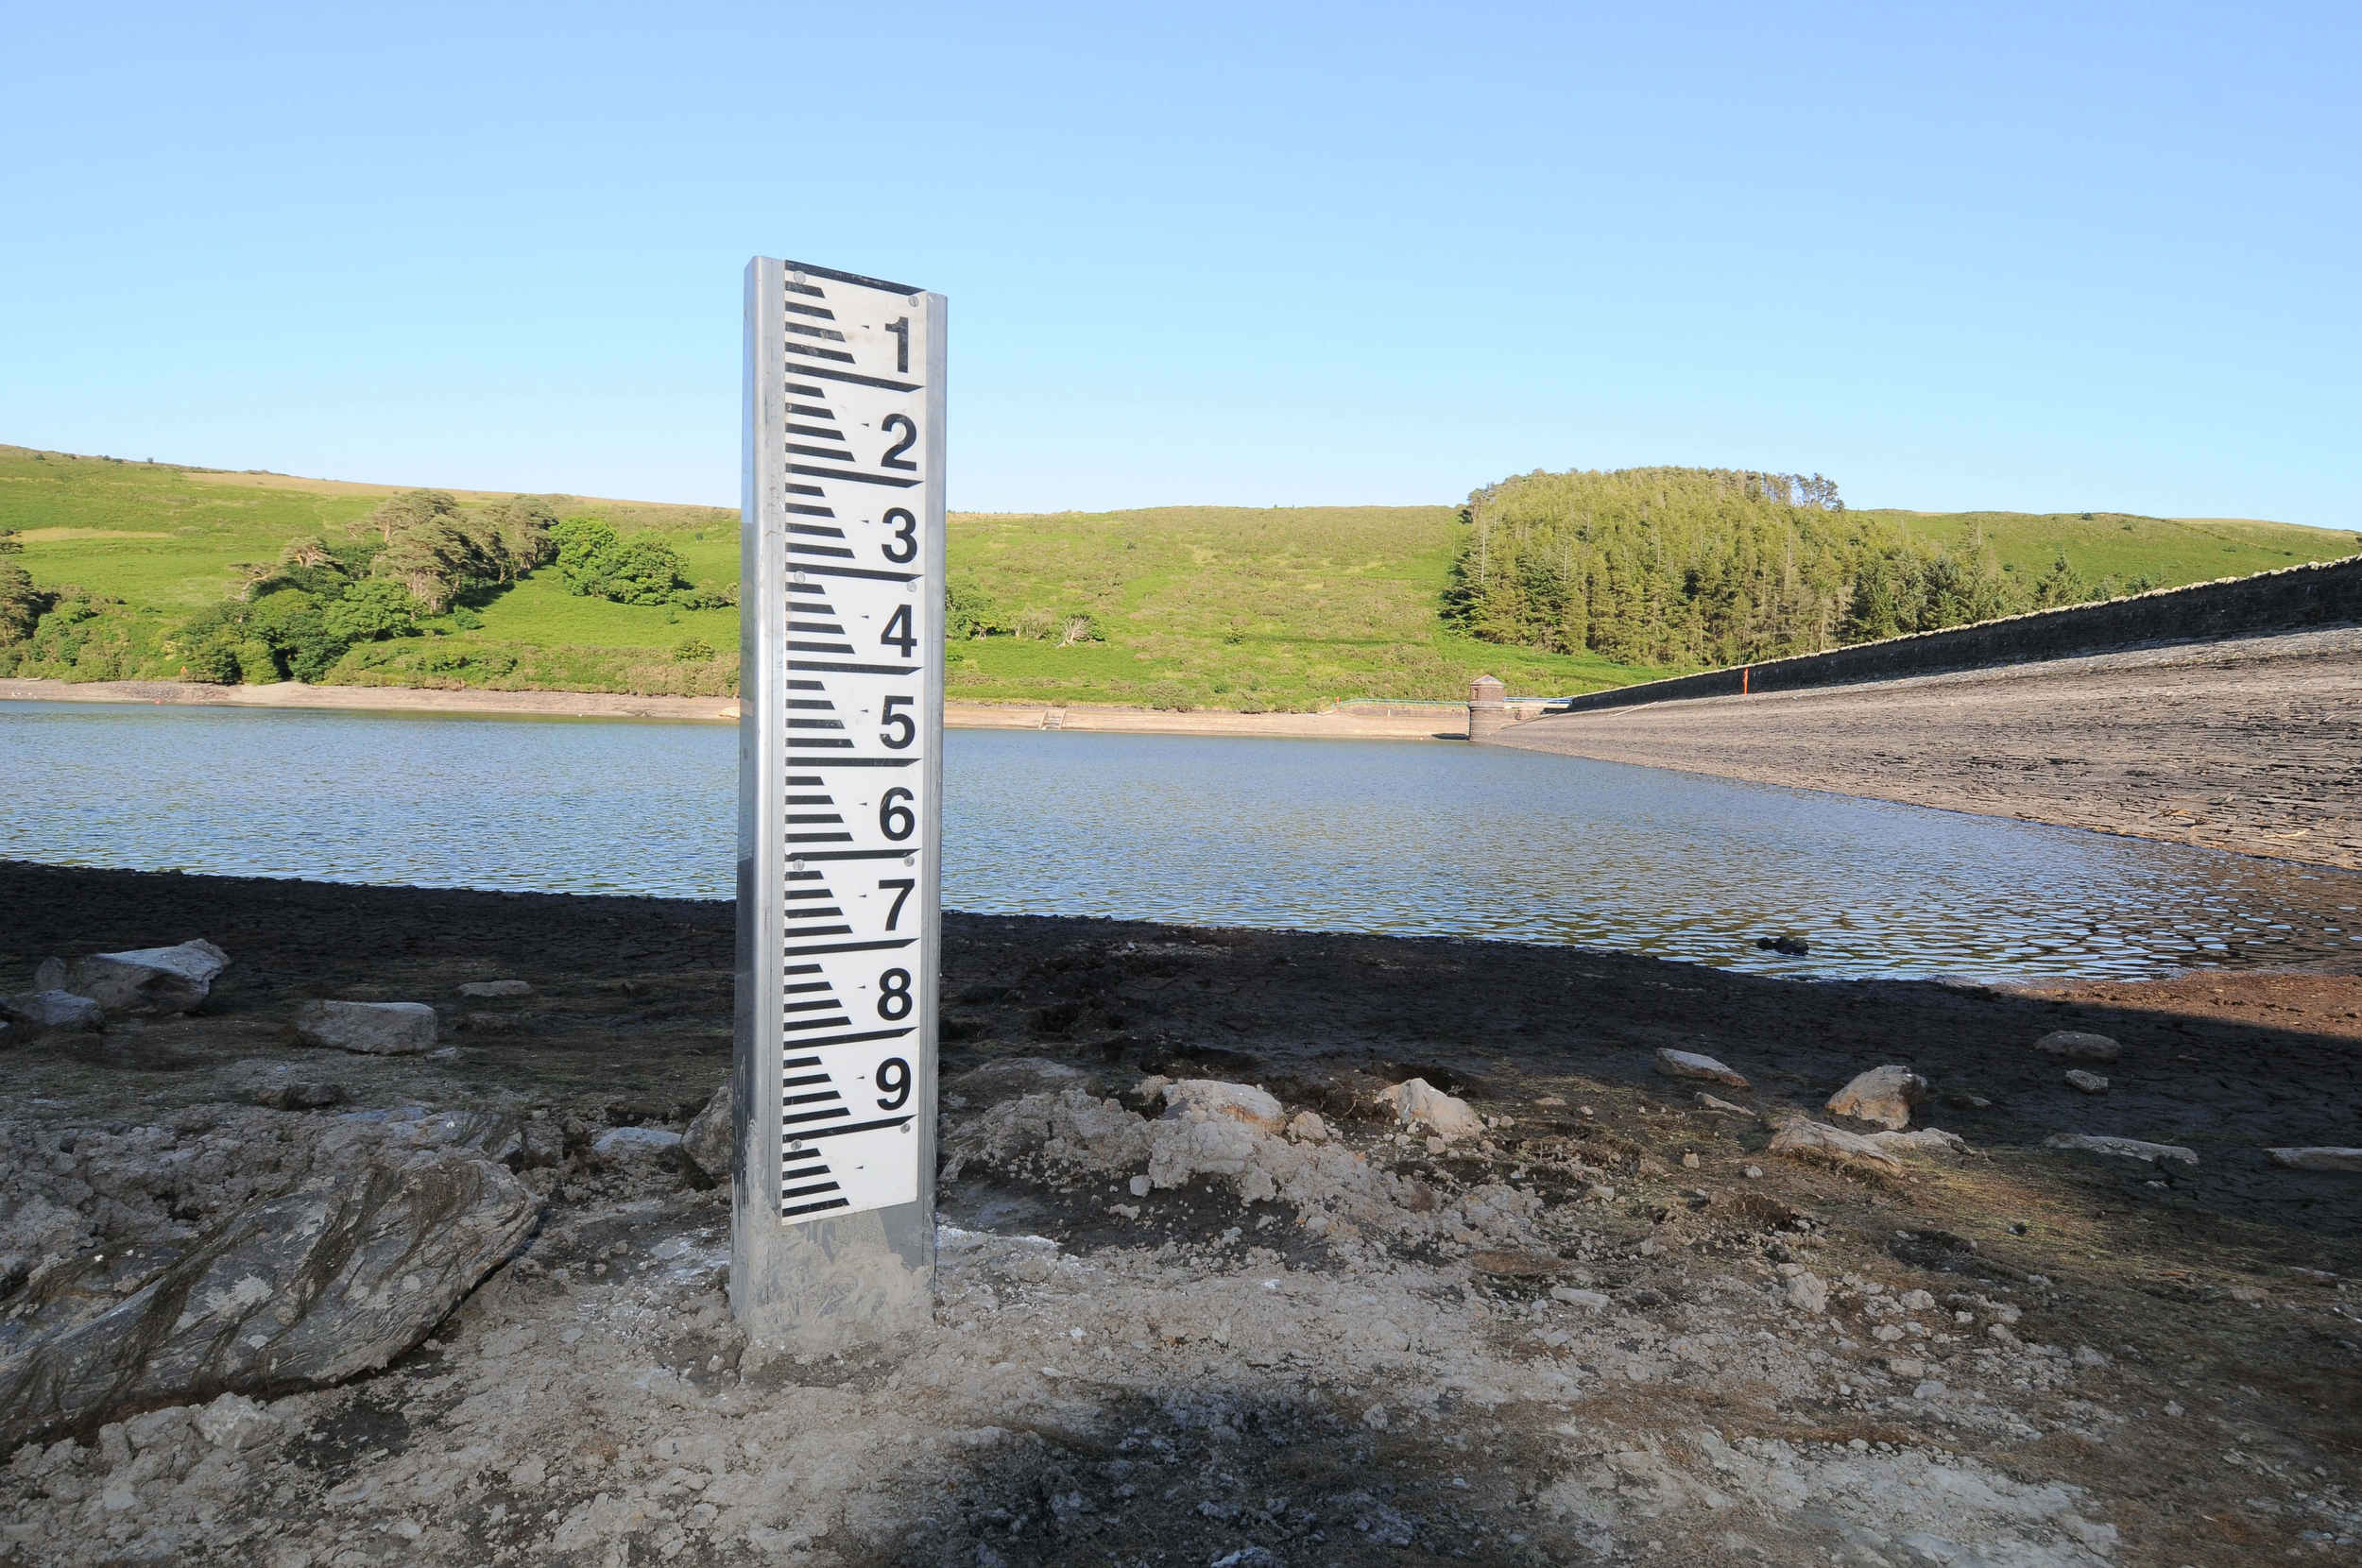 Exposed water level gauges at West Baldwin (Injebreck) reservoir